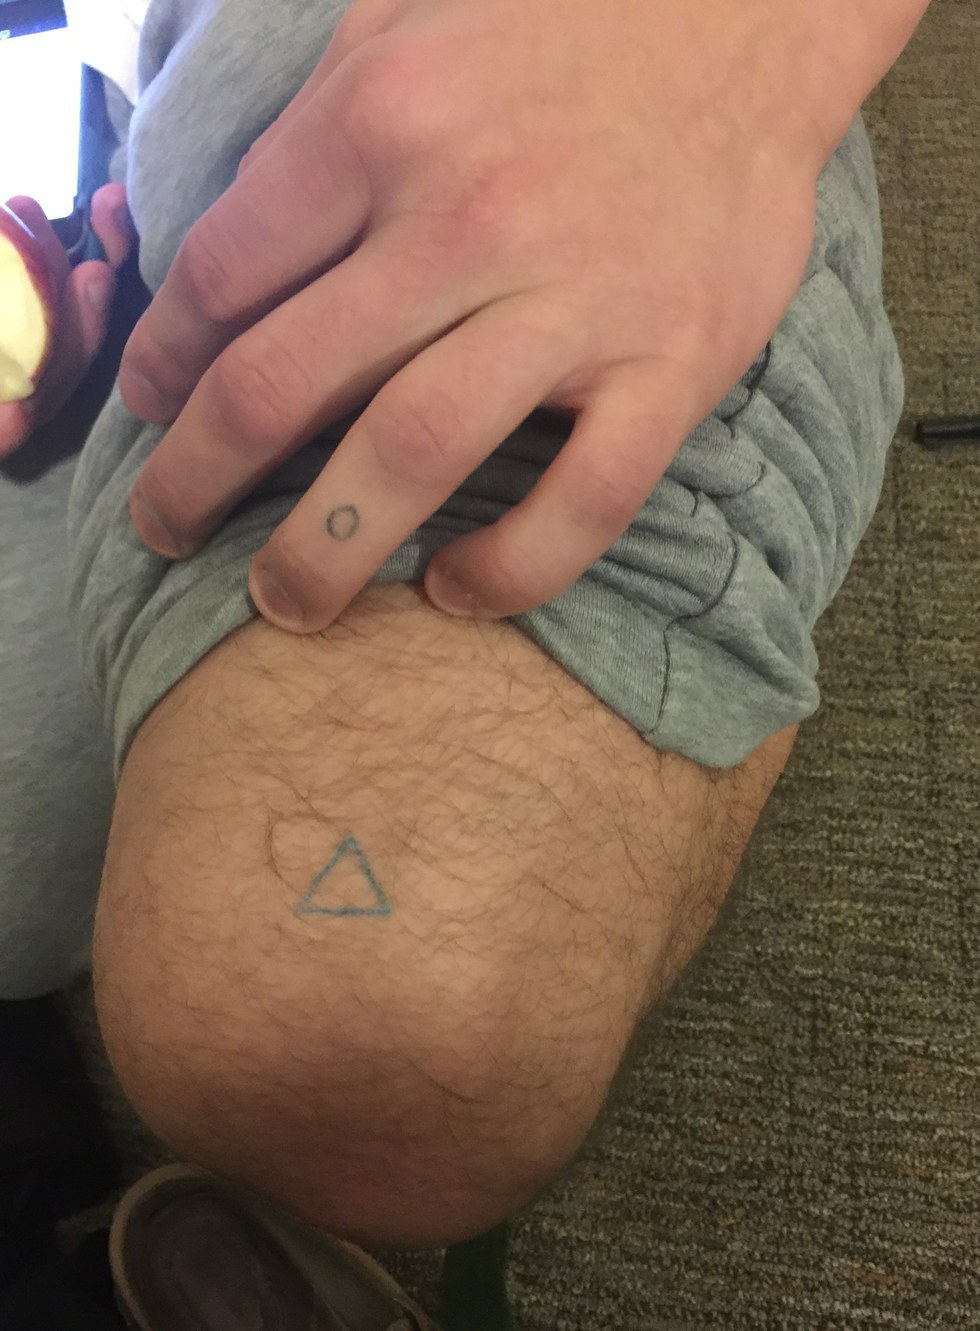 My Friend Got A Stick And Poke Tattoo And This Is What Happened